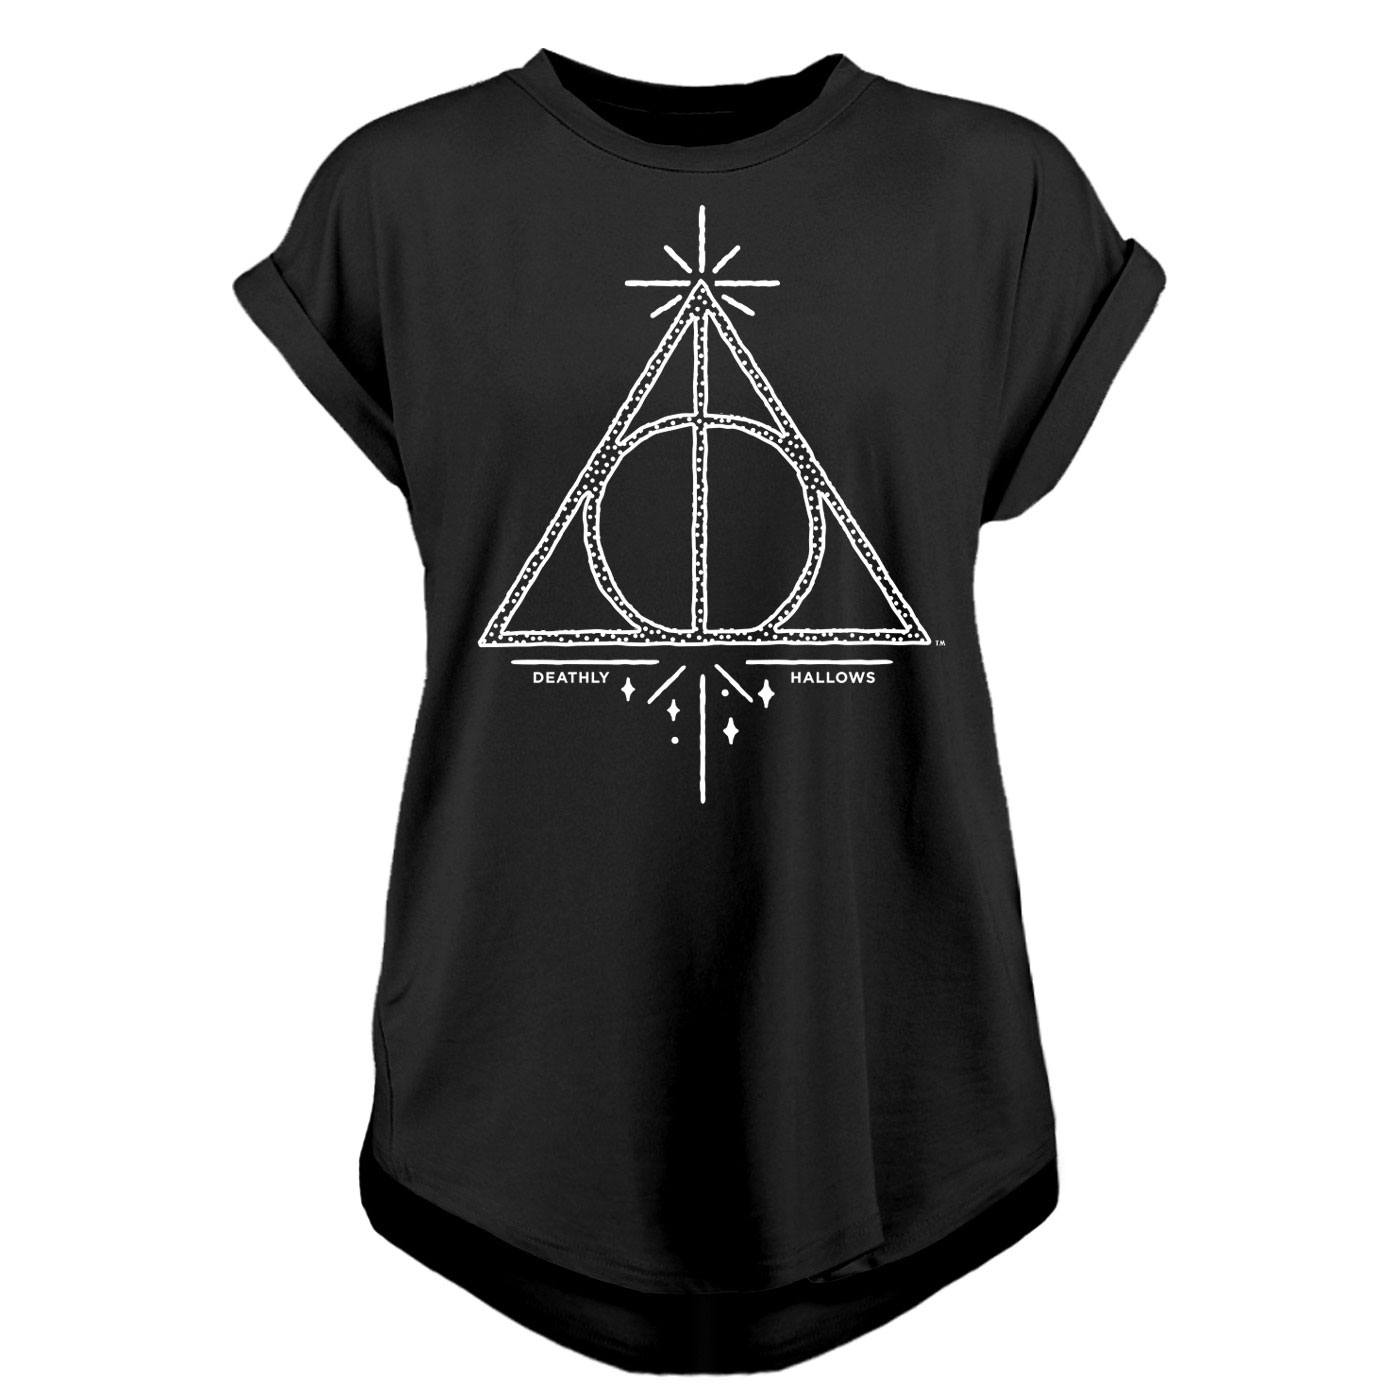 Harry Potter Ladies T-Shirt Deathly Hallows Size XL